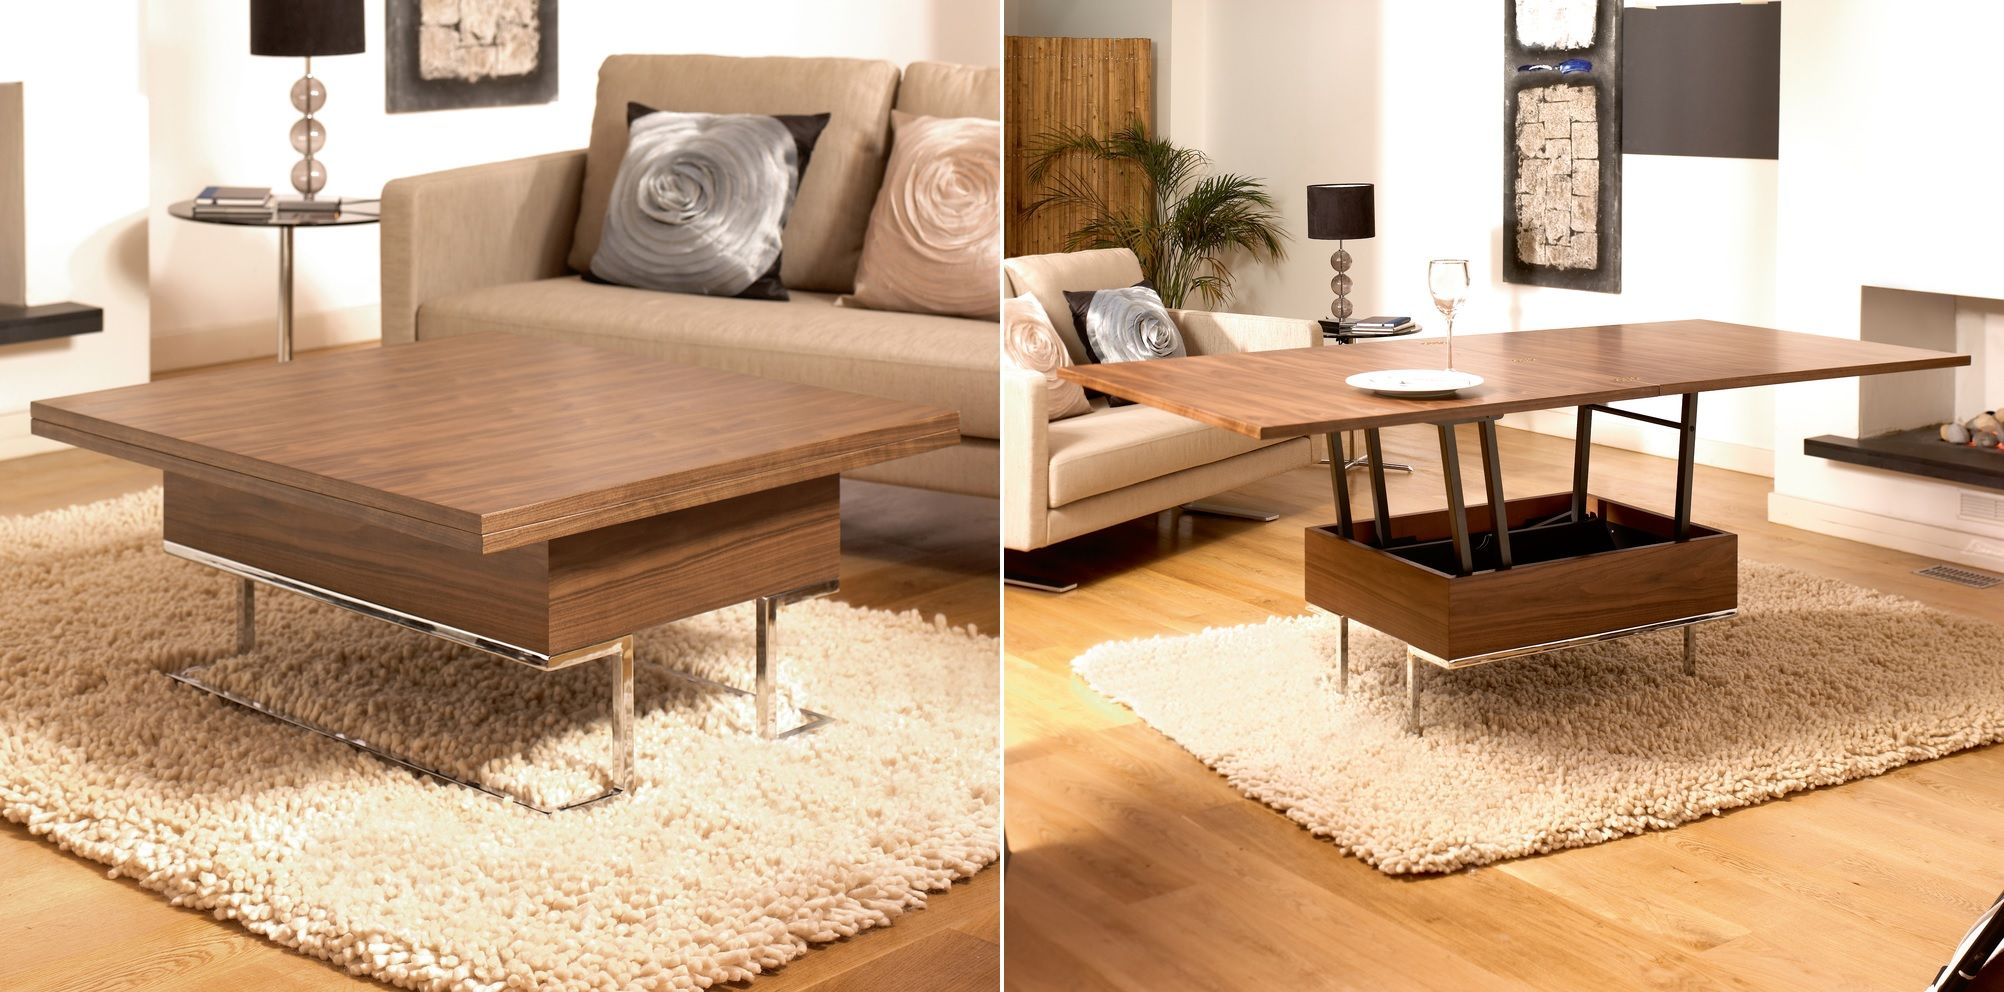 More Functions In A pact Design Convertible Coffee Tables